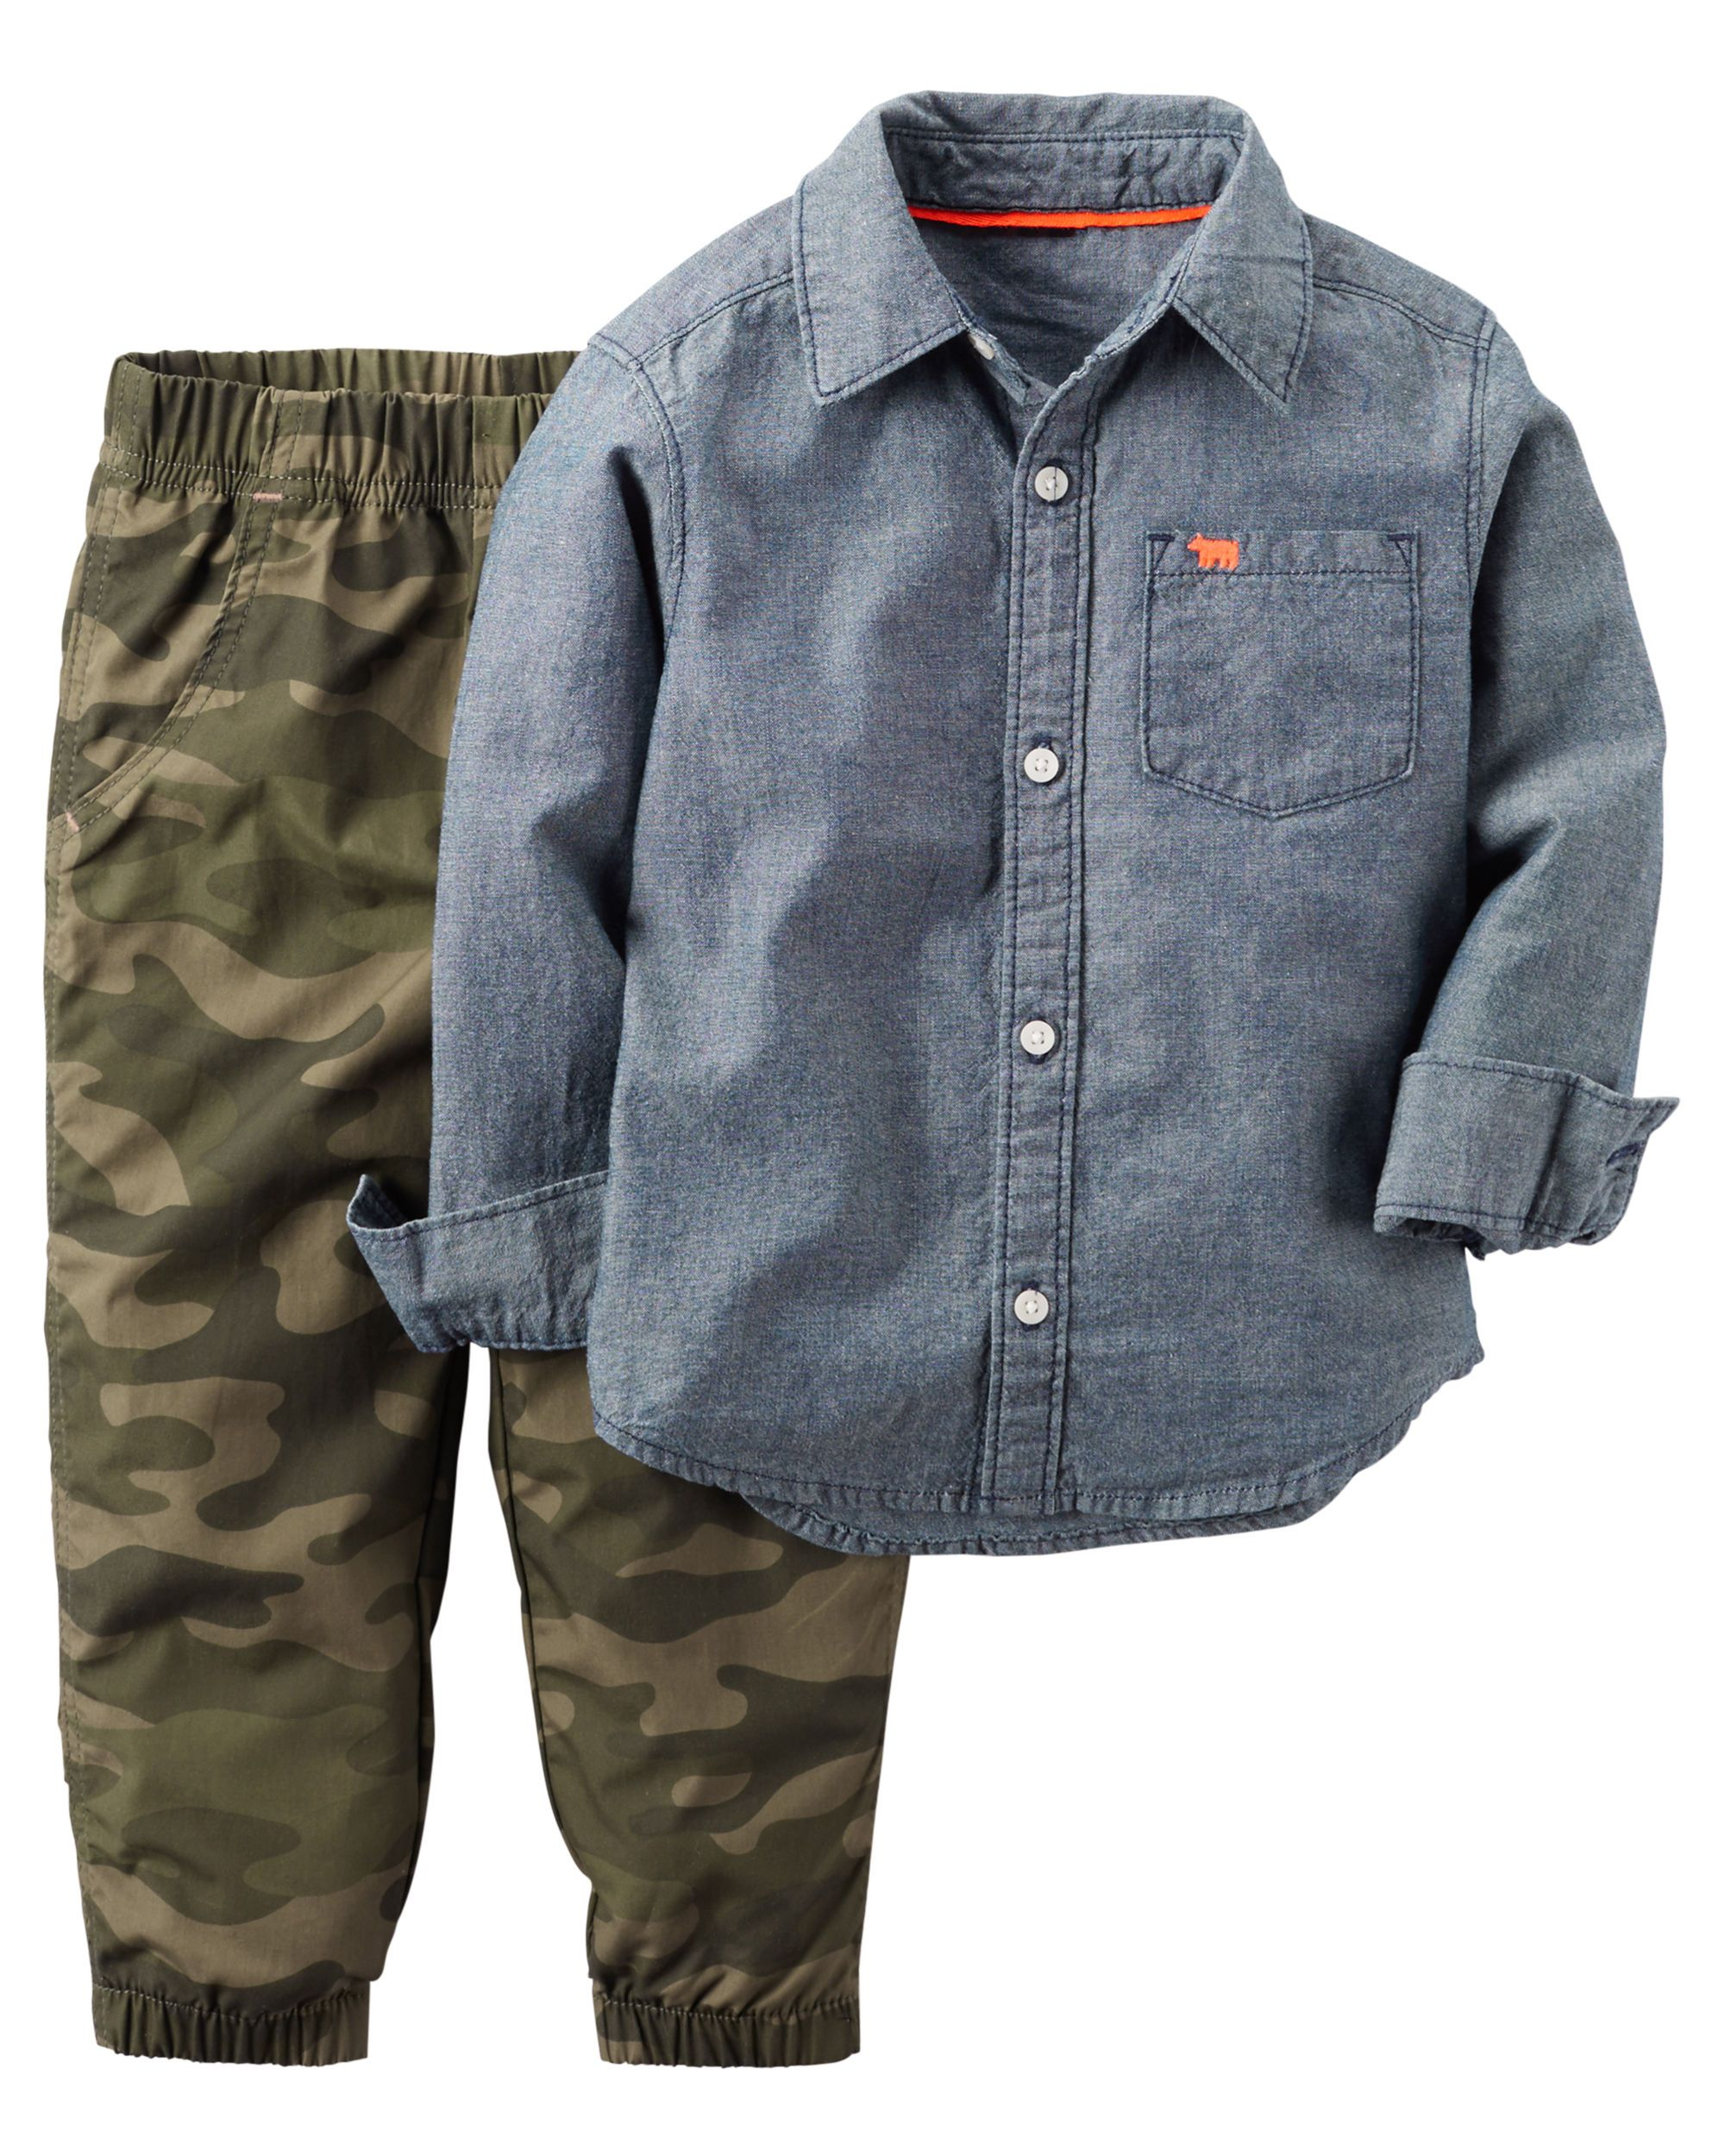 From the playground to the pier poplin pants and a chambray button